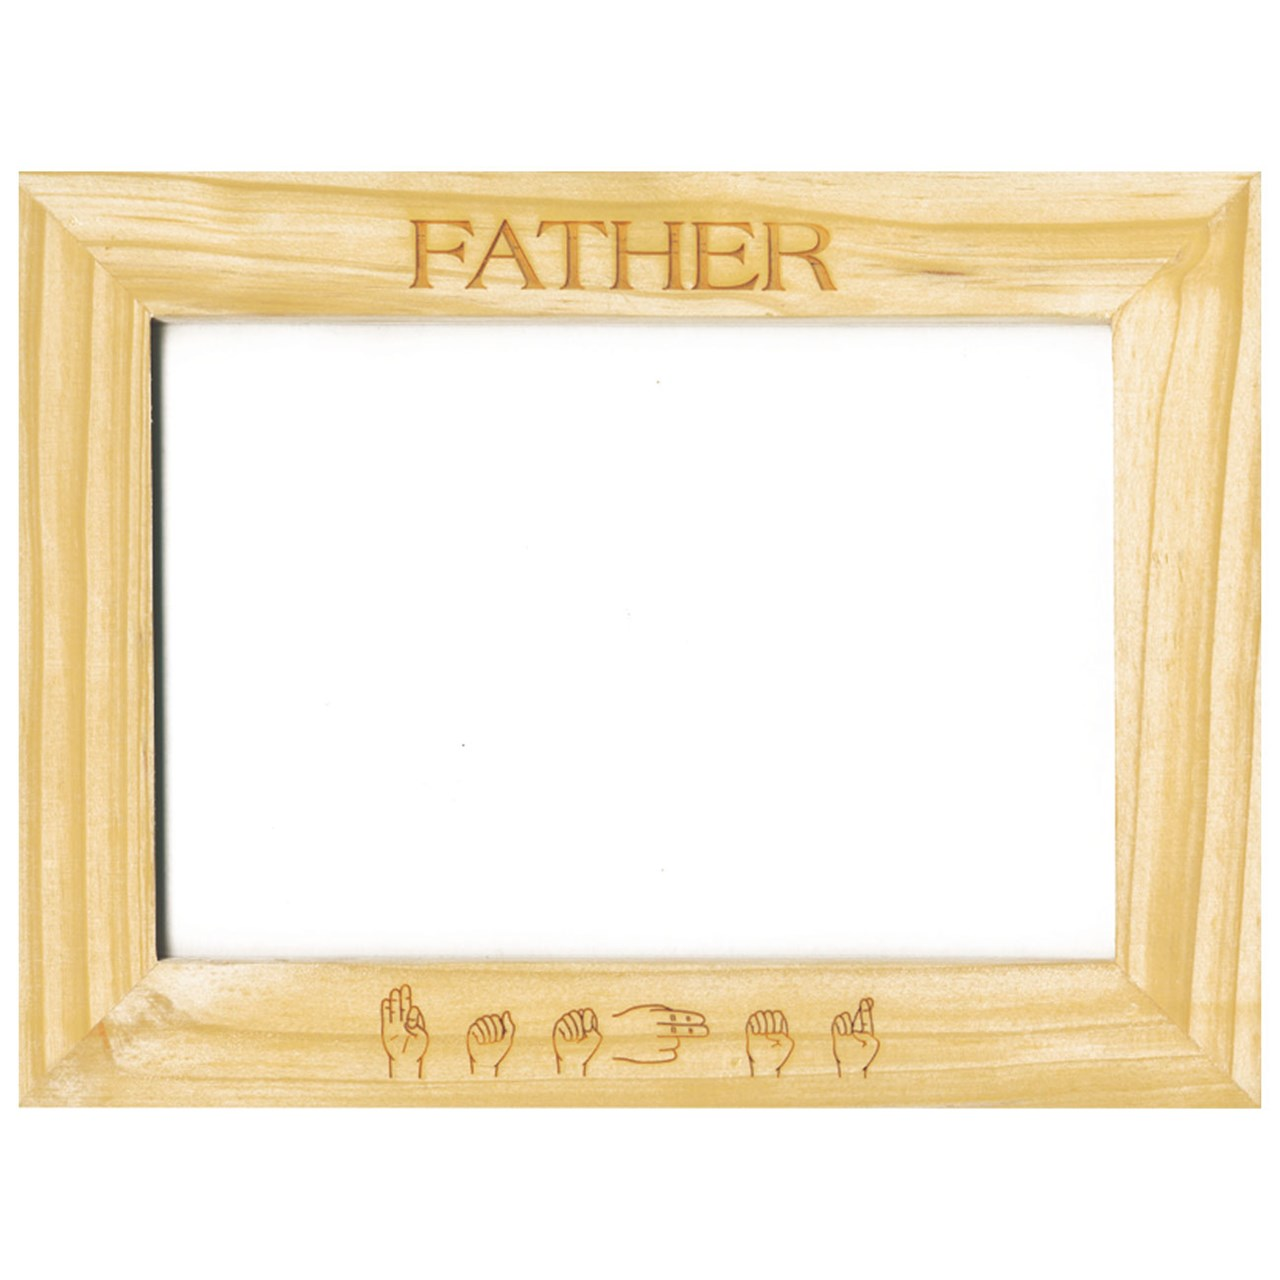 MaxiAids | Custom-Made Pinewood Picture Frames - Father